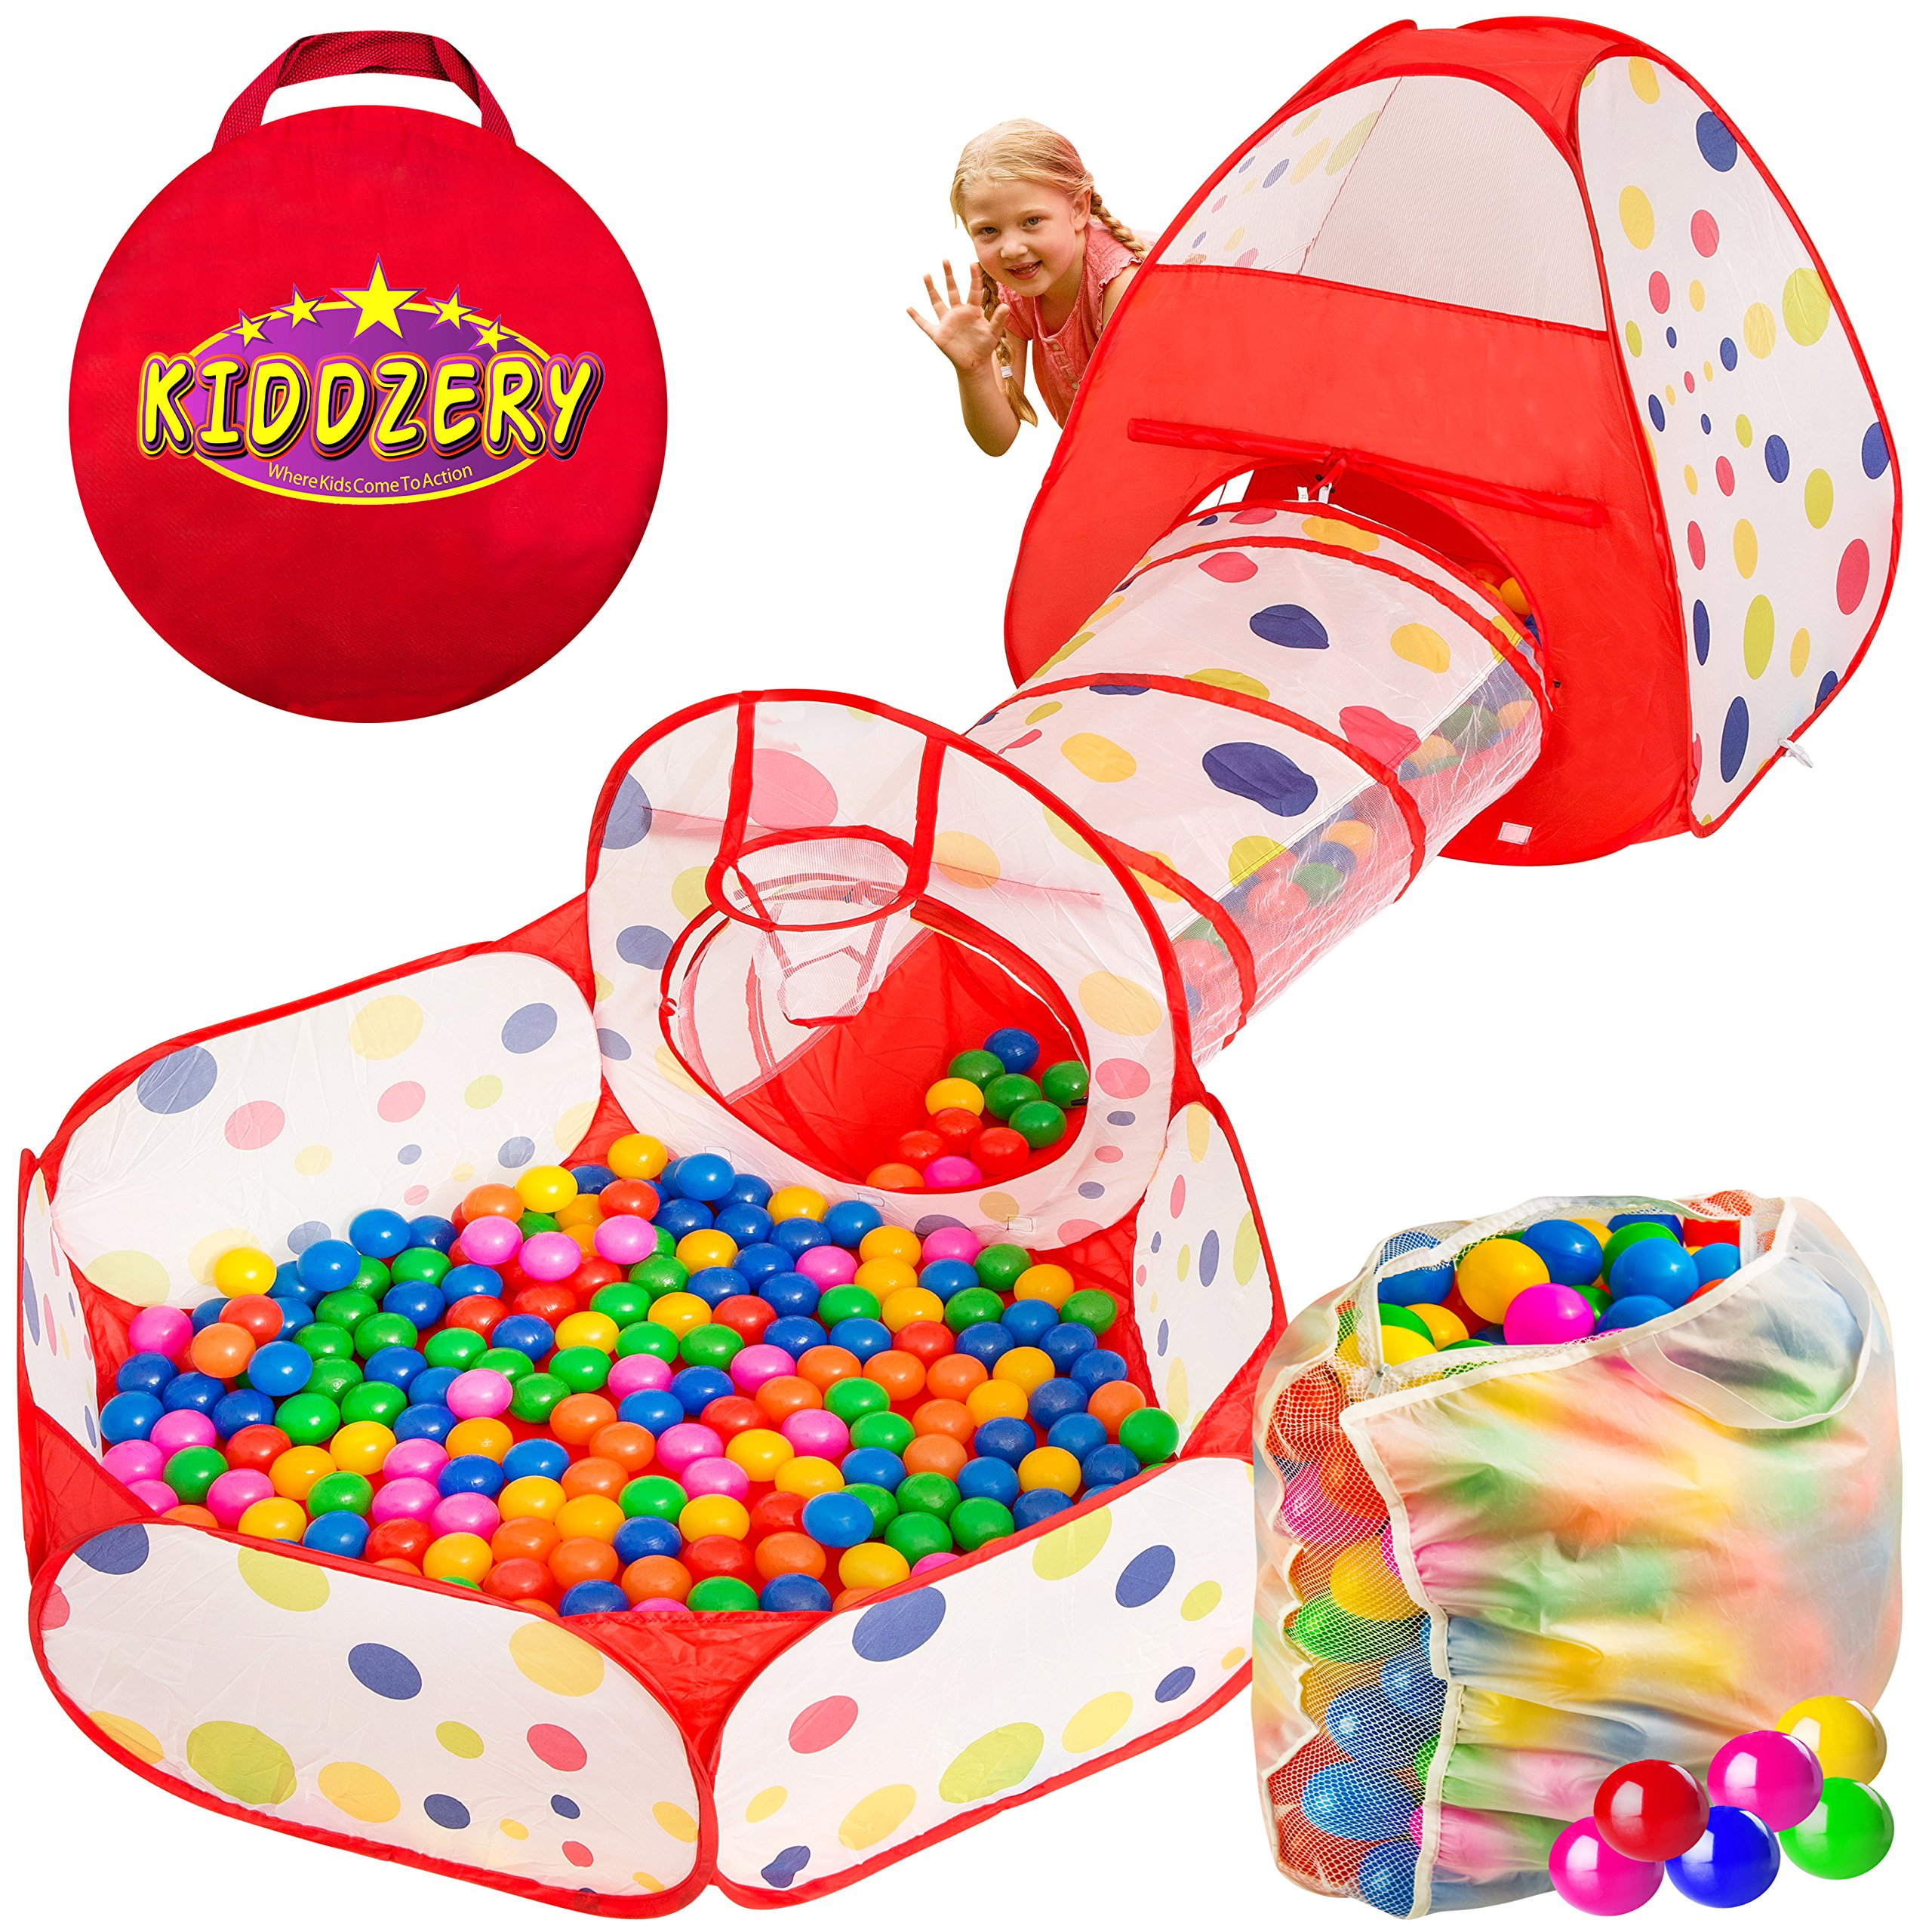 Kiddzery 3pc Ball Pit with Balls, Pop Up Kids Play Tent w/ Crawl Tunnel & Ball Pit, - 200 Crush Proof Balls - Great for Boys & Girls, Toddlers & Babies -W/ Carrying Case for Balls and Ball Pit by kiddzery